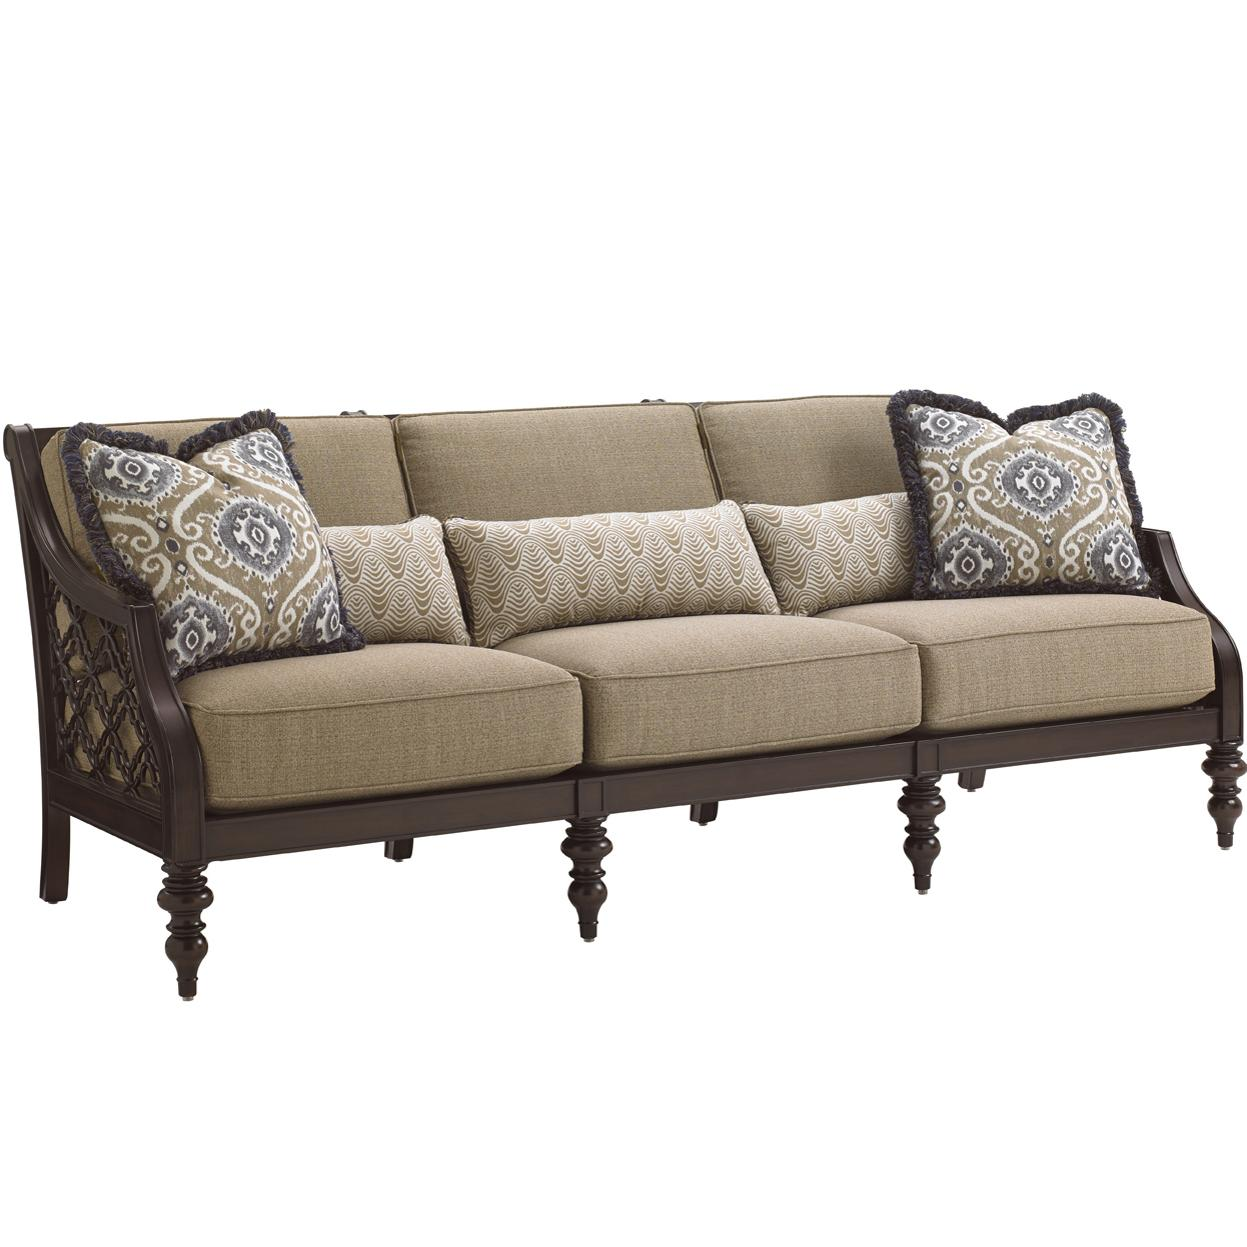 Tommy Bahama Outdoor Living Black Sands Outdoor Sofa - Item Number: 3235-33+CS3235-33